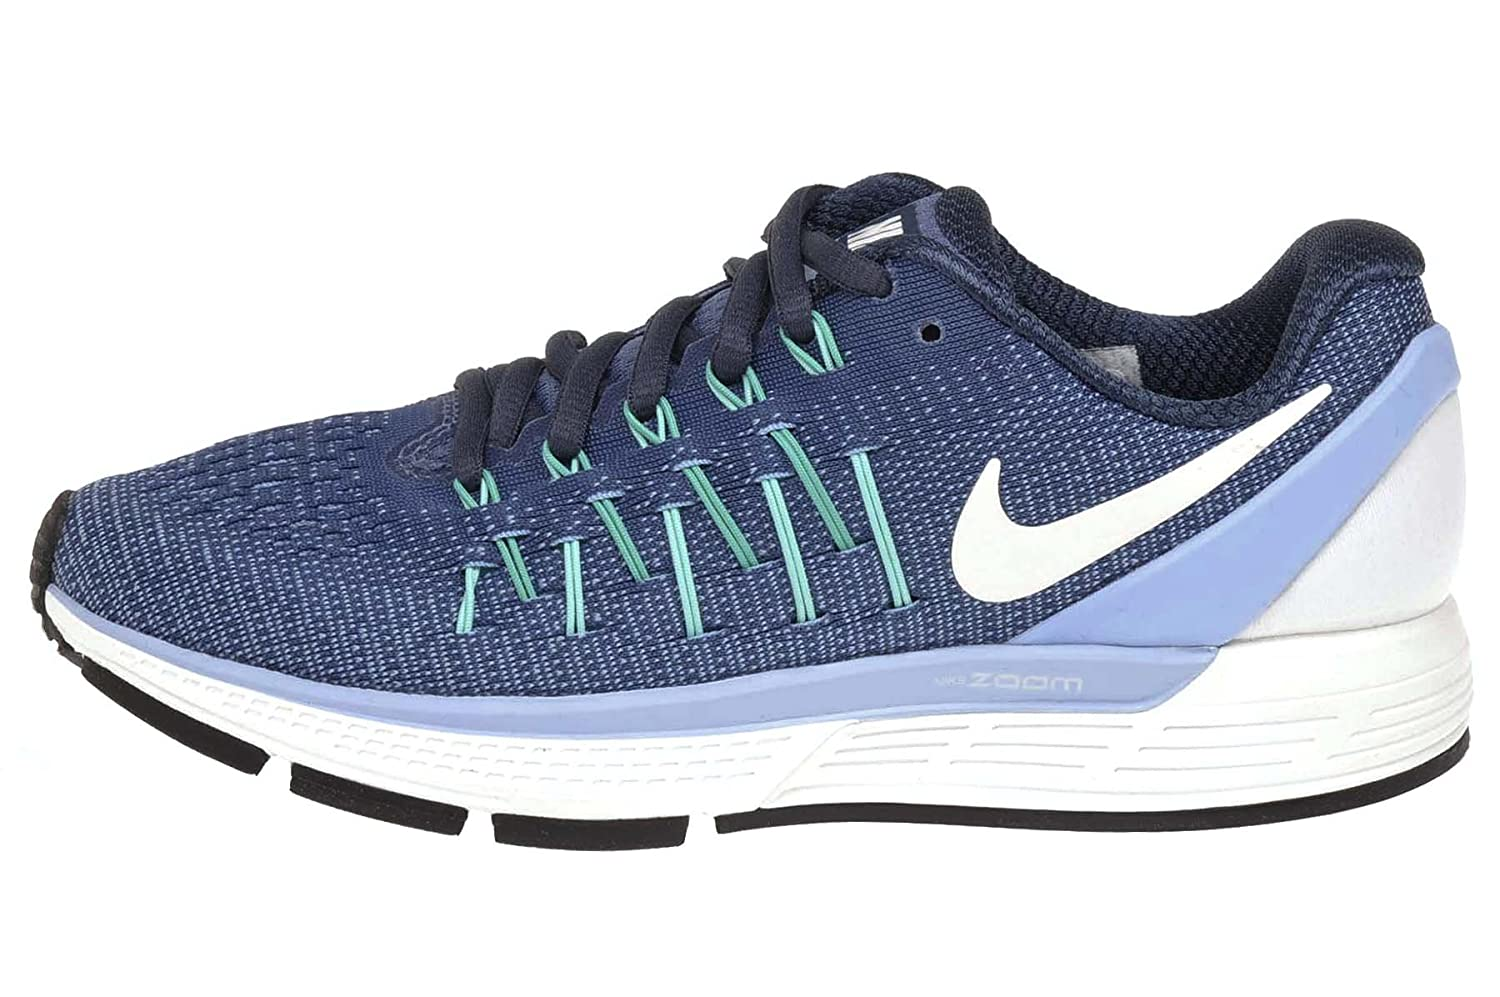 check out 5e284 d718d Womens Nike Air Zoom Odyssey 2 Running Shoe 5.5 B(M)US